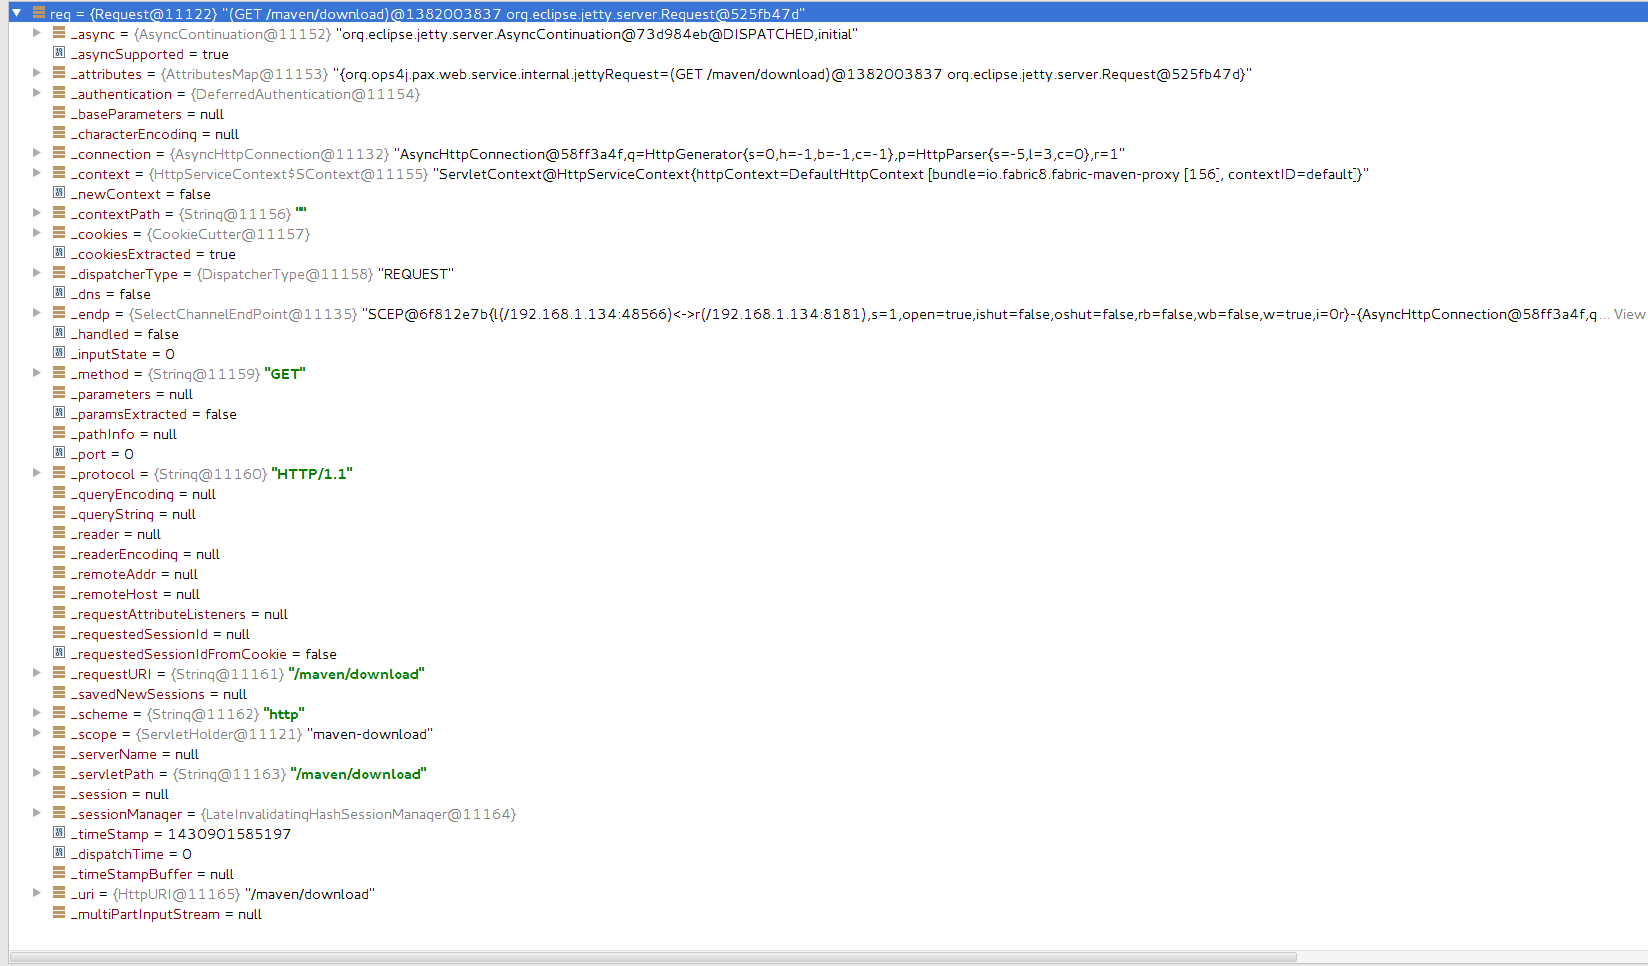 ENTESB-3151] Fail to provsion ssh container - invalid zip - JBoss